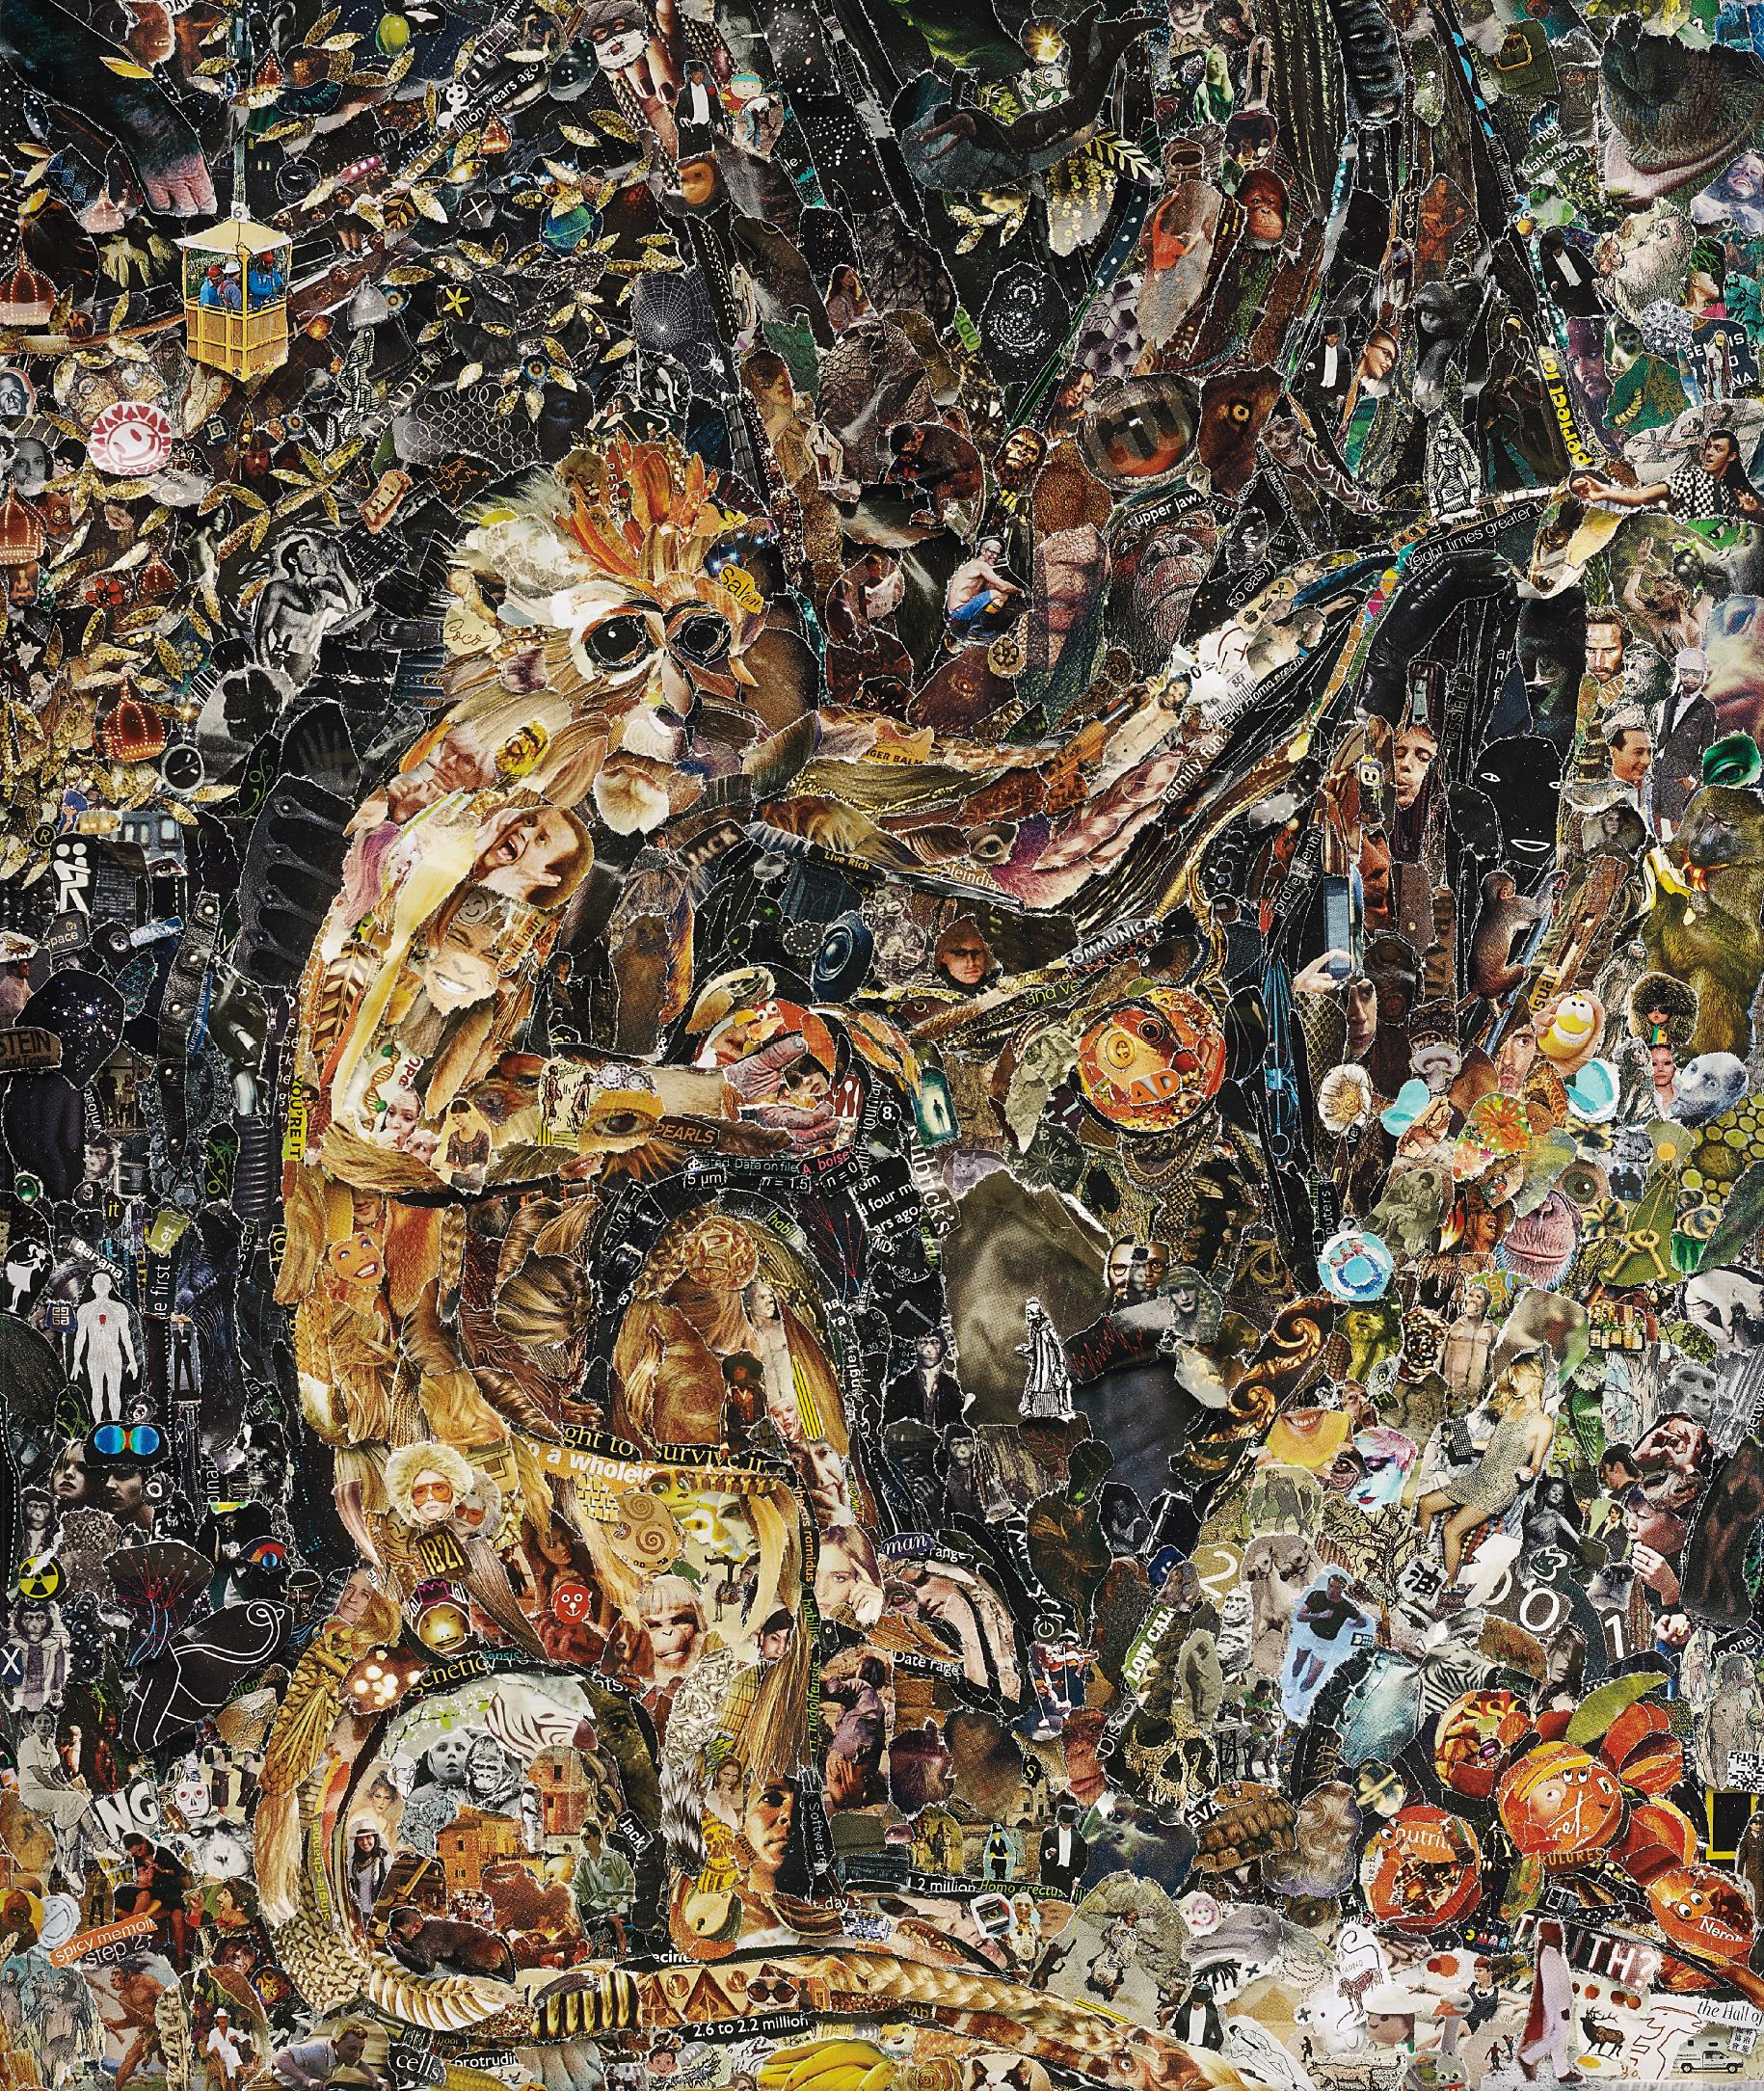 Vik Muniz-Green Monkey, After George Stubbs From Pictures Of Magazines 2-2011